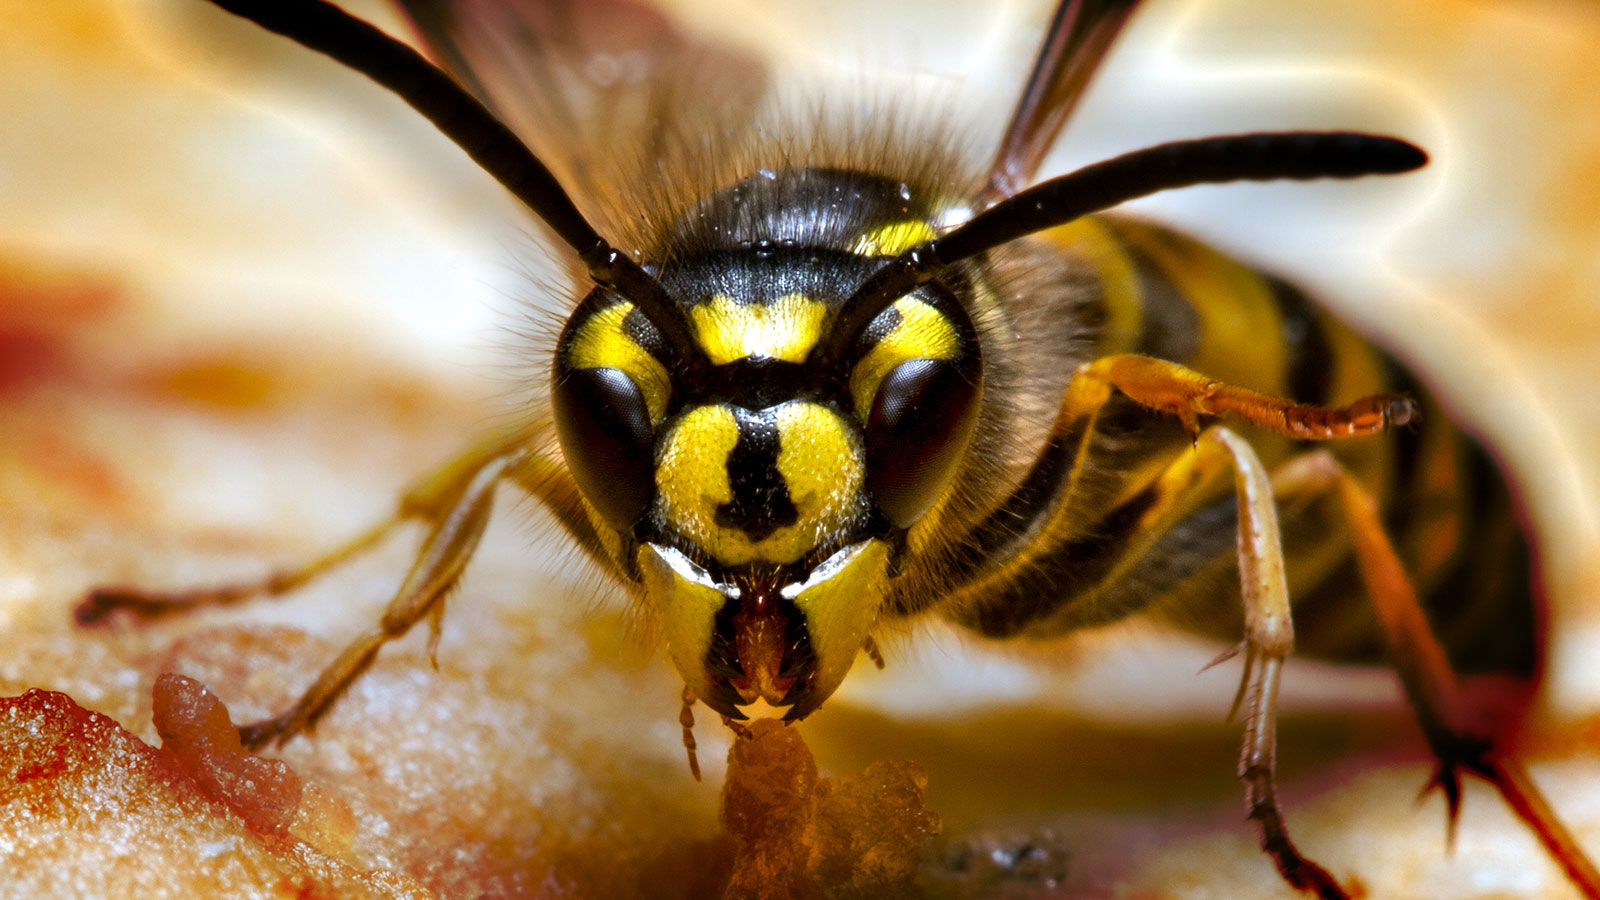 What's the Difference Between a Hornet and a Wasp?